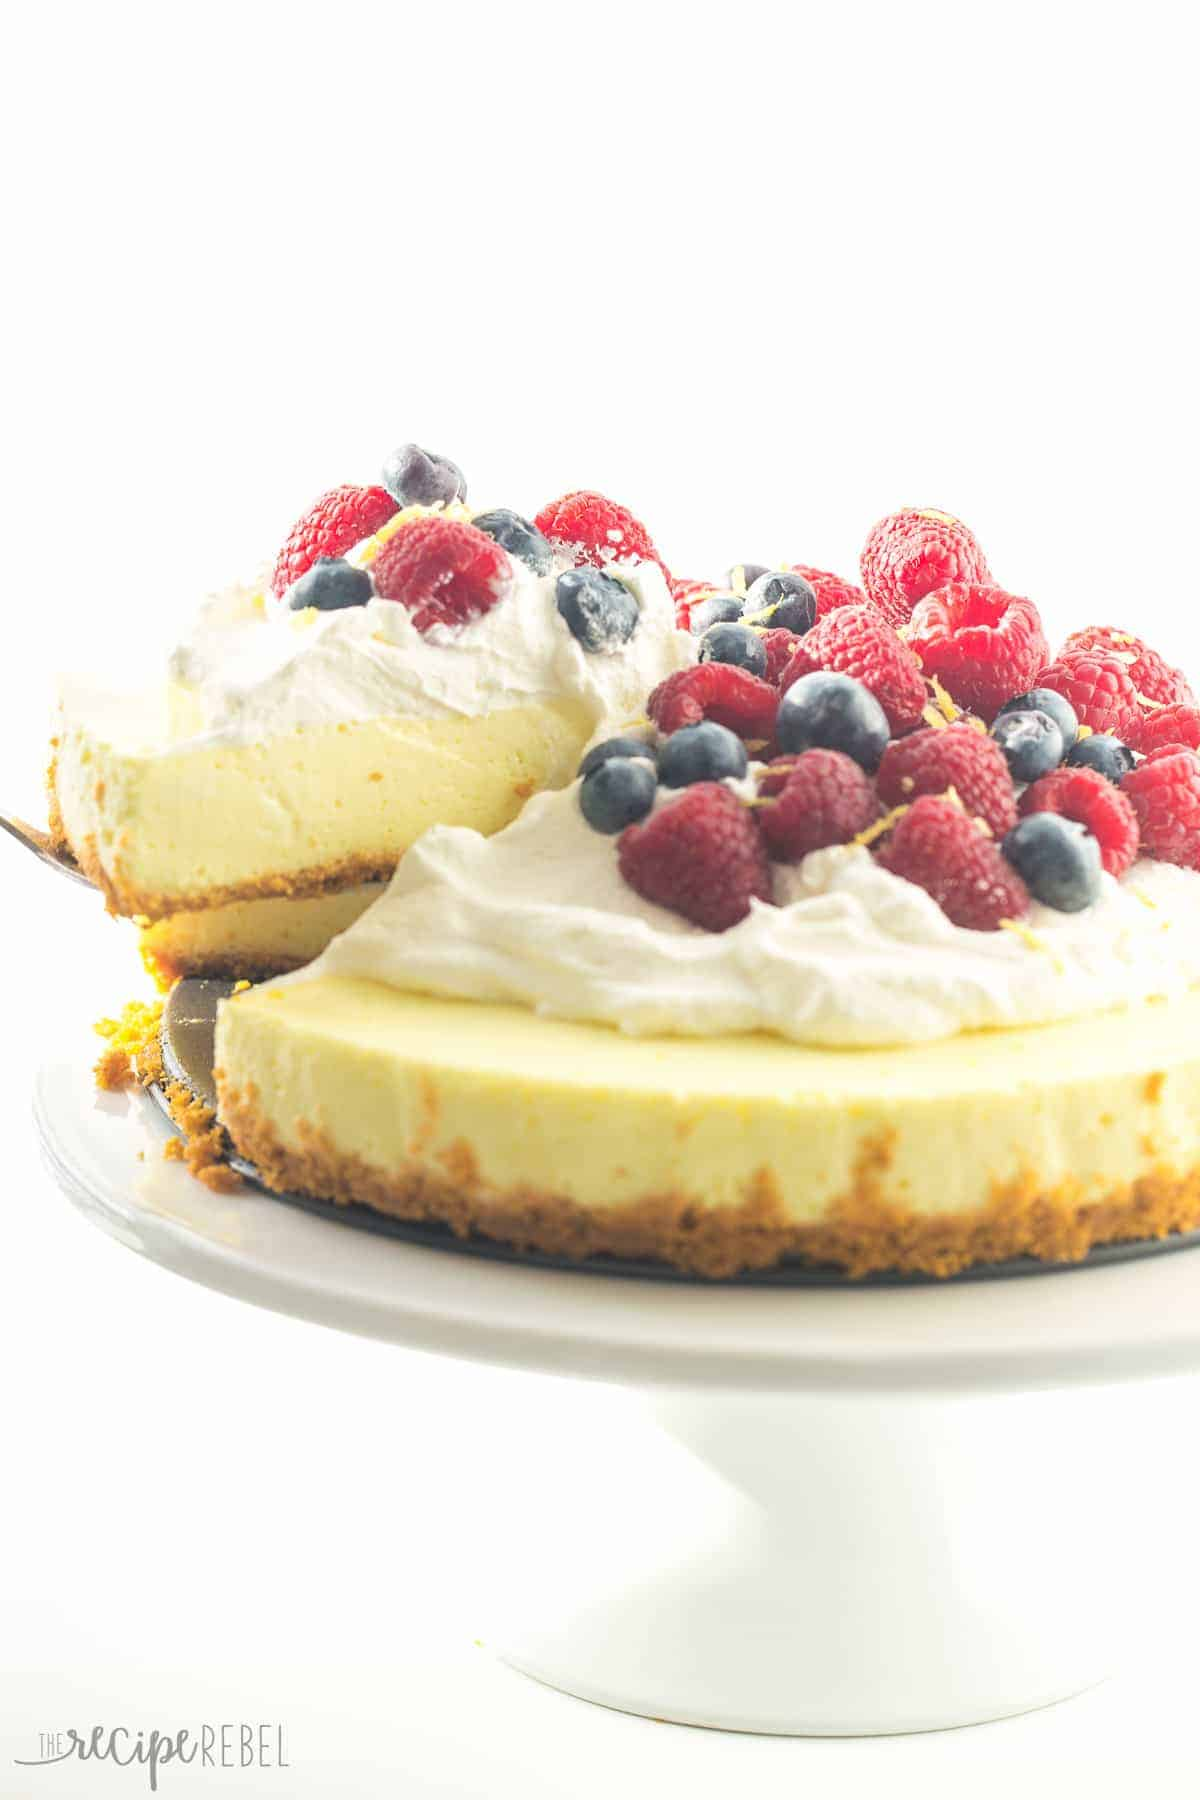 A light, luscious, no bake Lemon Cheesecake with a secret ingredient that makes it even healthier! Top with whipped cream and fresh berries for the perfect Spring or Easter dessert.